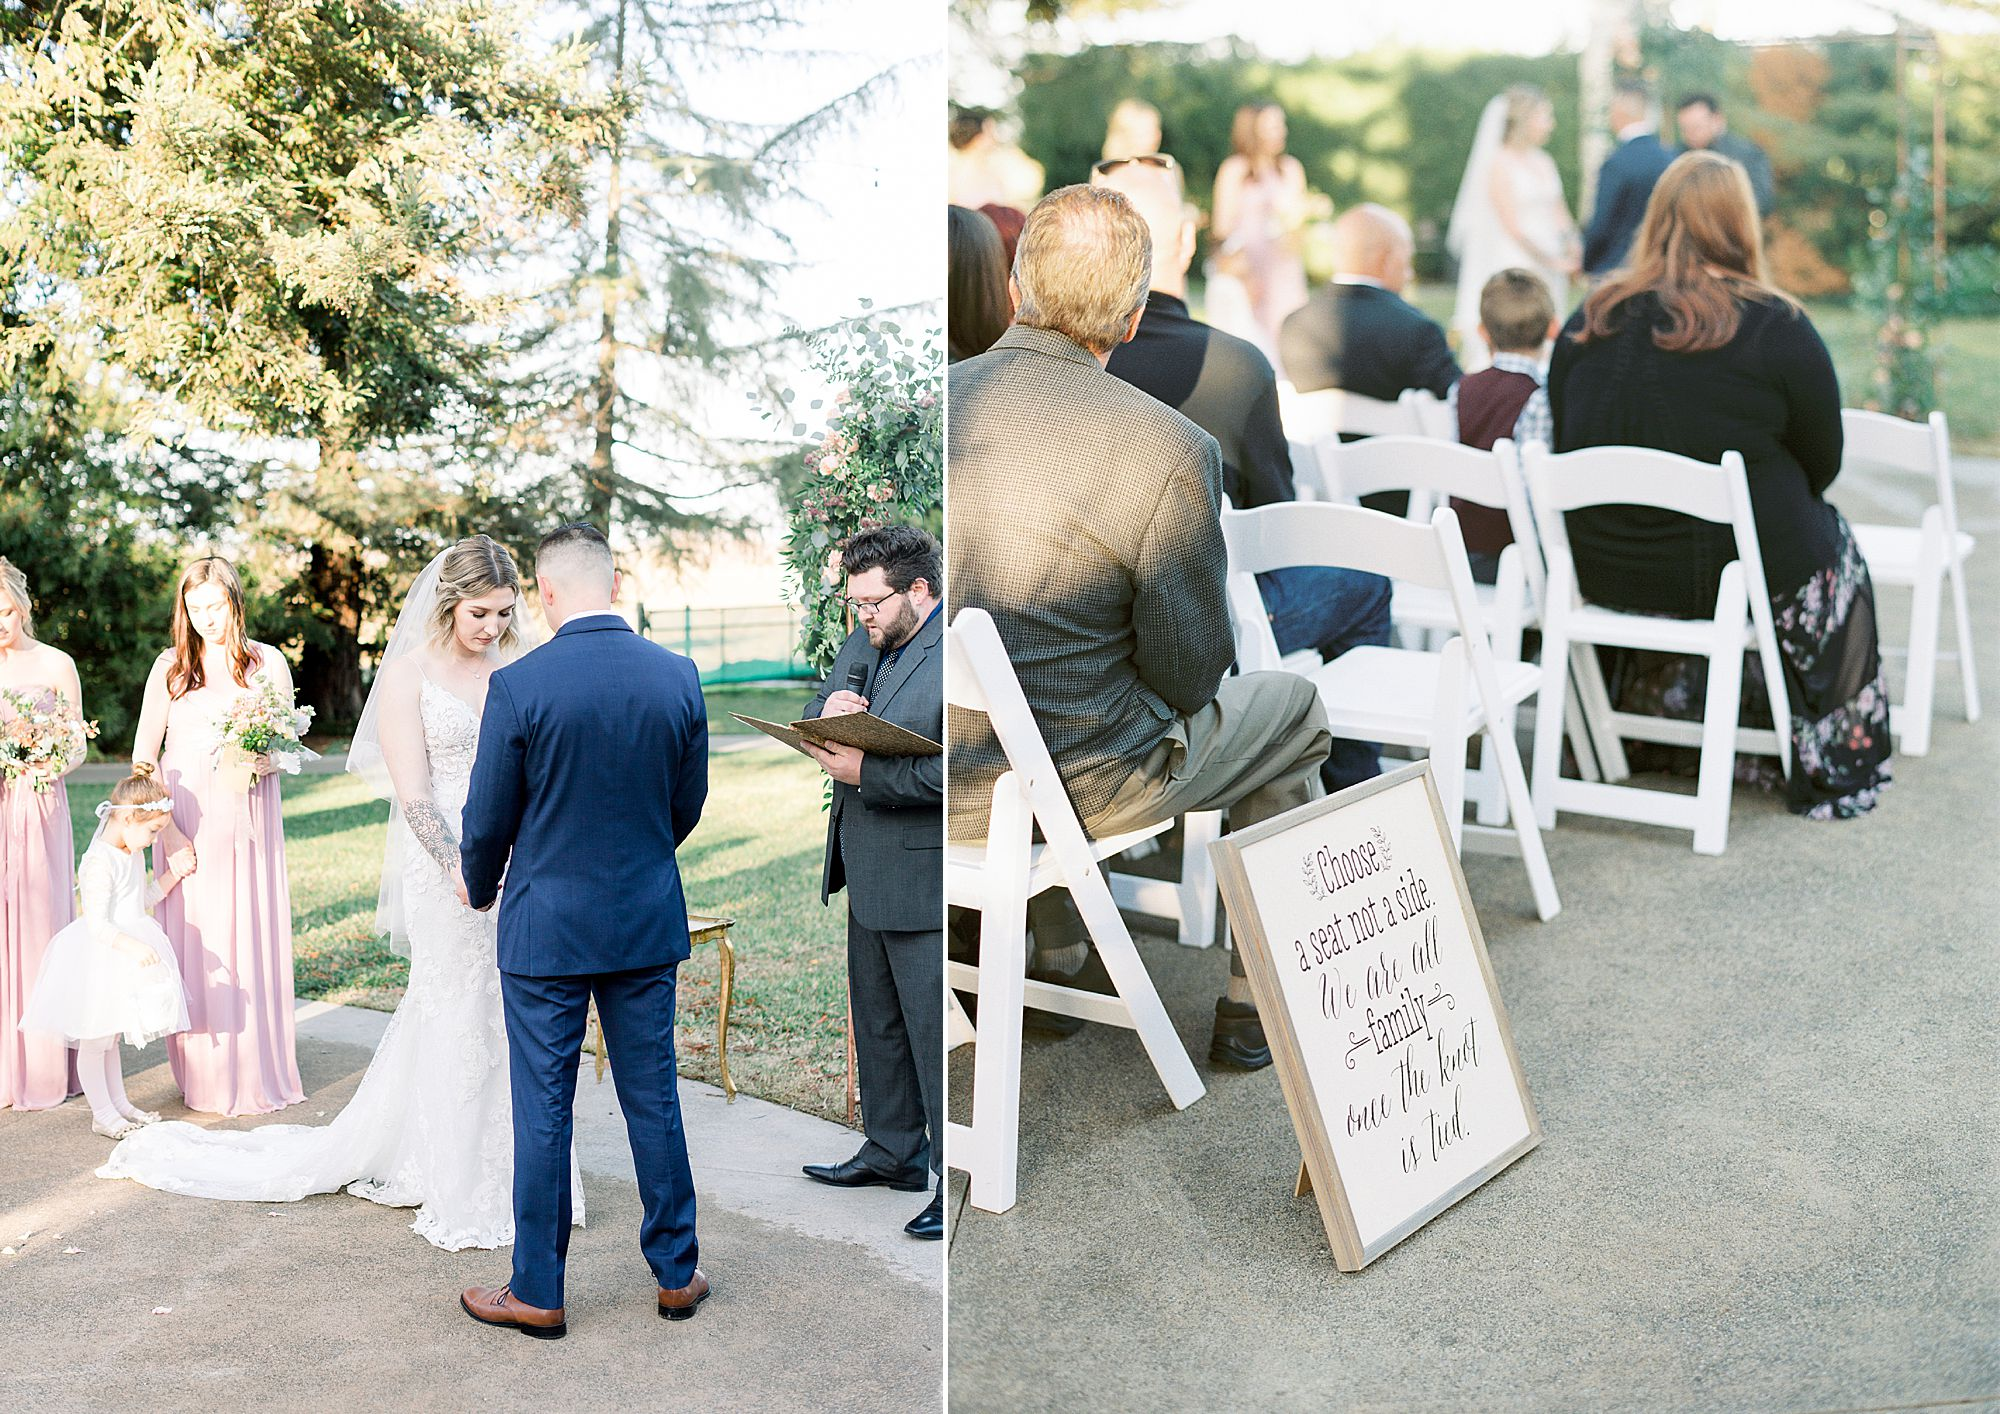 Inn at Park Winters Wedding - Lindsay and Shane - Ashley Baumgartner - Park Winters Wedding Photographer - Sacramento Wedding Photographer_0056.jpg